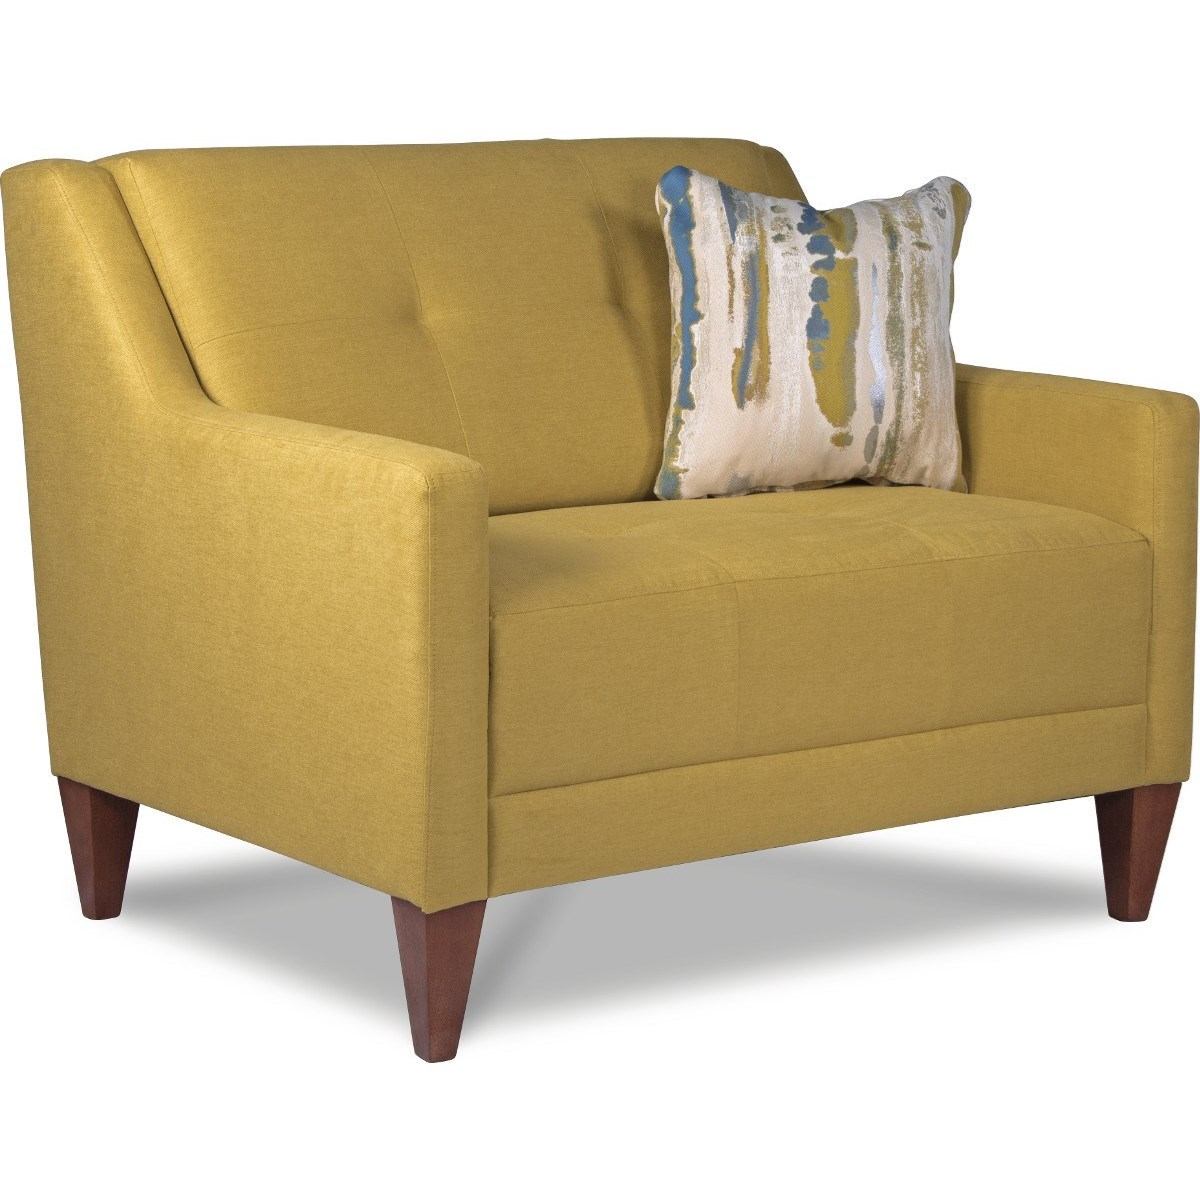 La-Z-Boy Verve Mid-Century Modern Chair-and-a-Half With